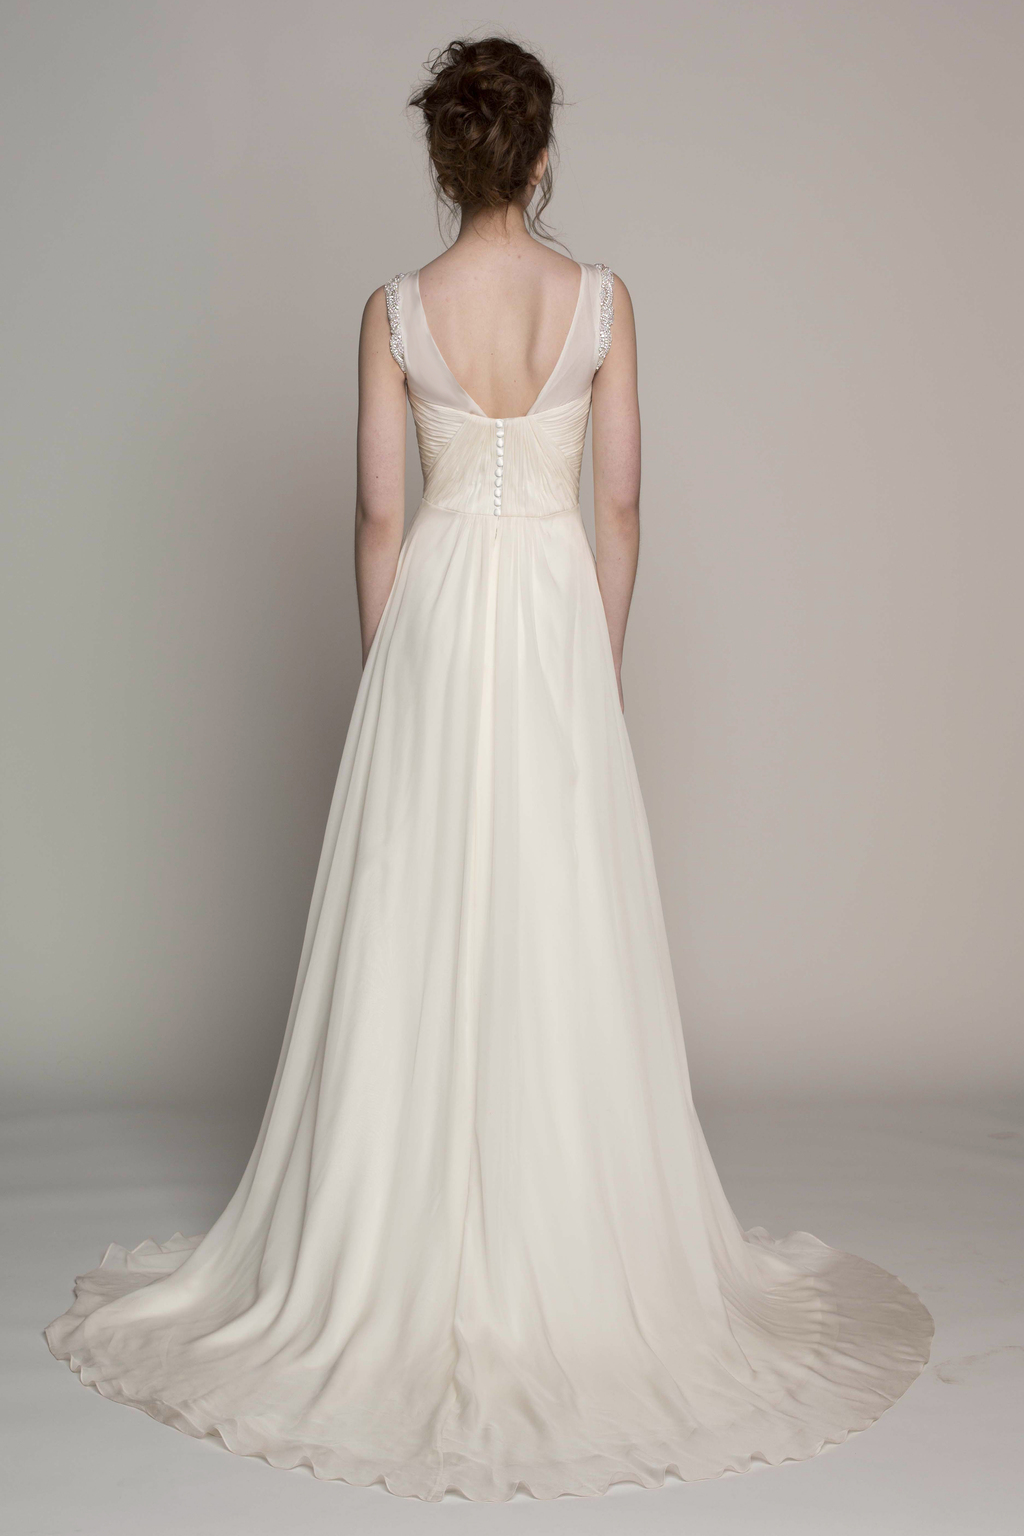 Kelly-faetanini-wedding-dress-2014-spring-bridal-gown-collection-caitlin.full